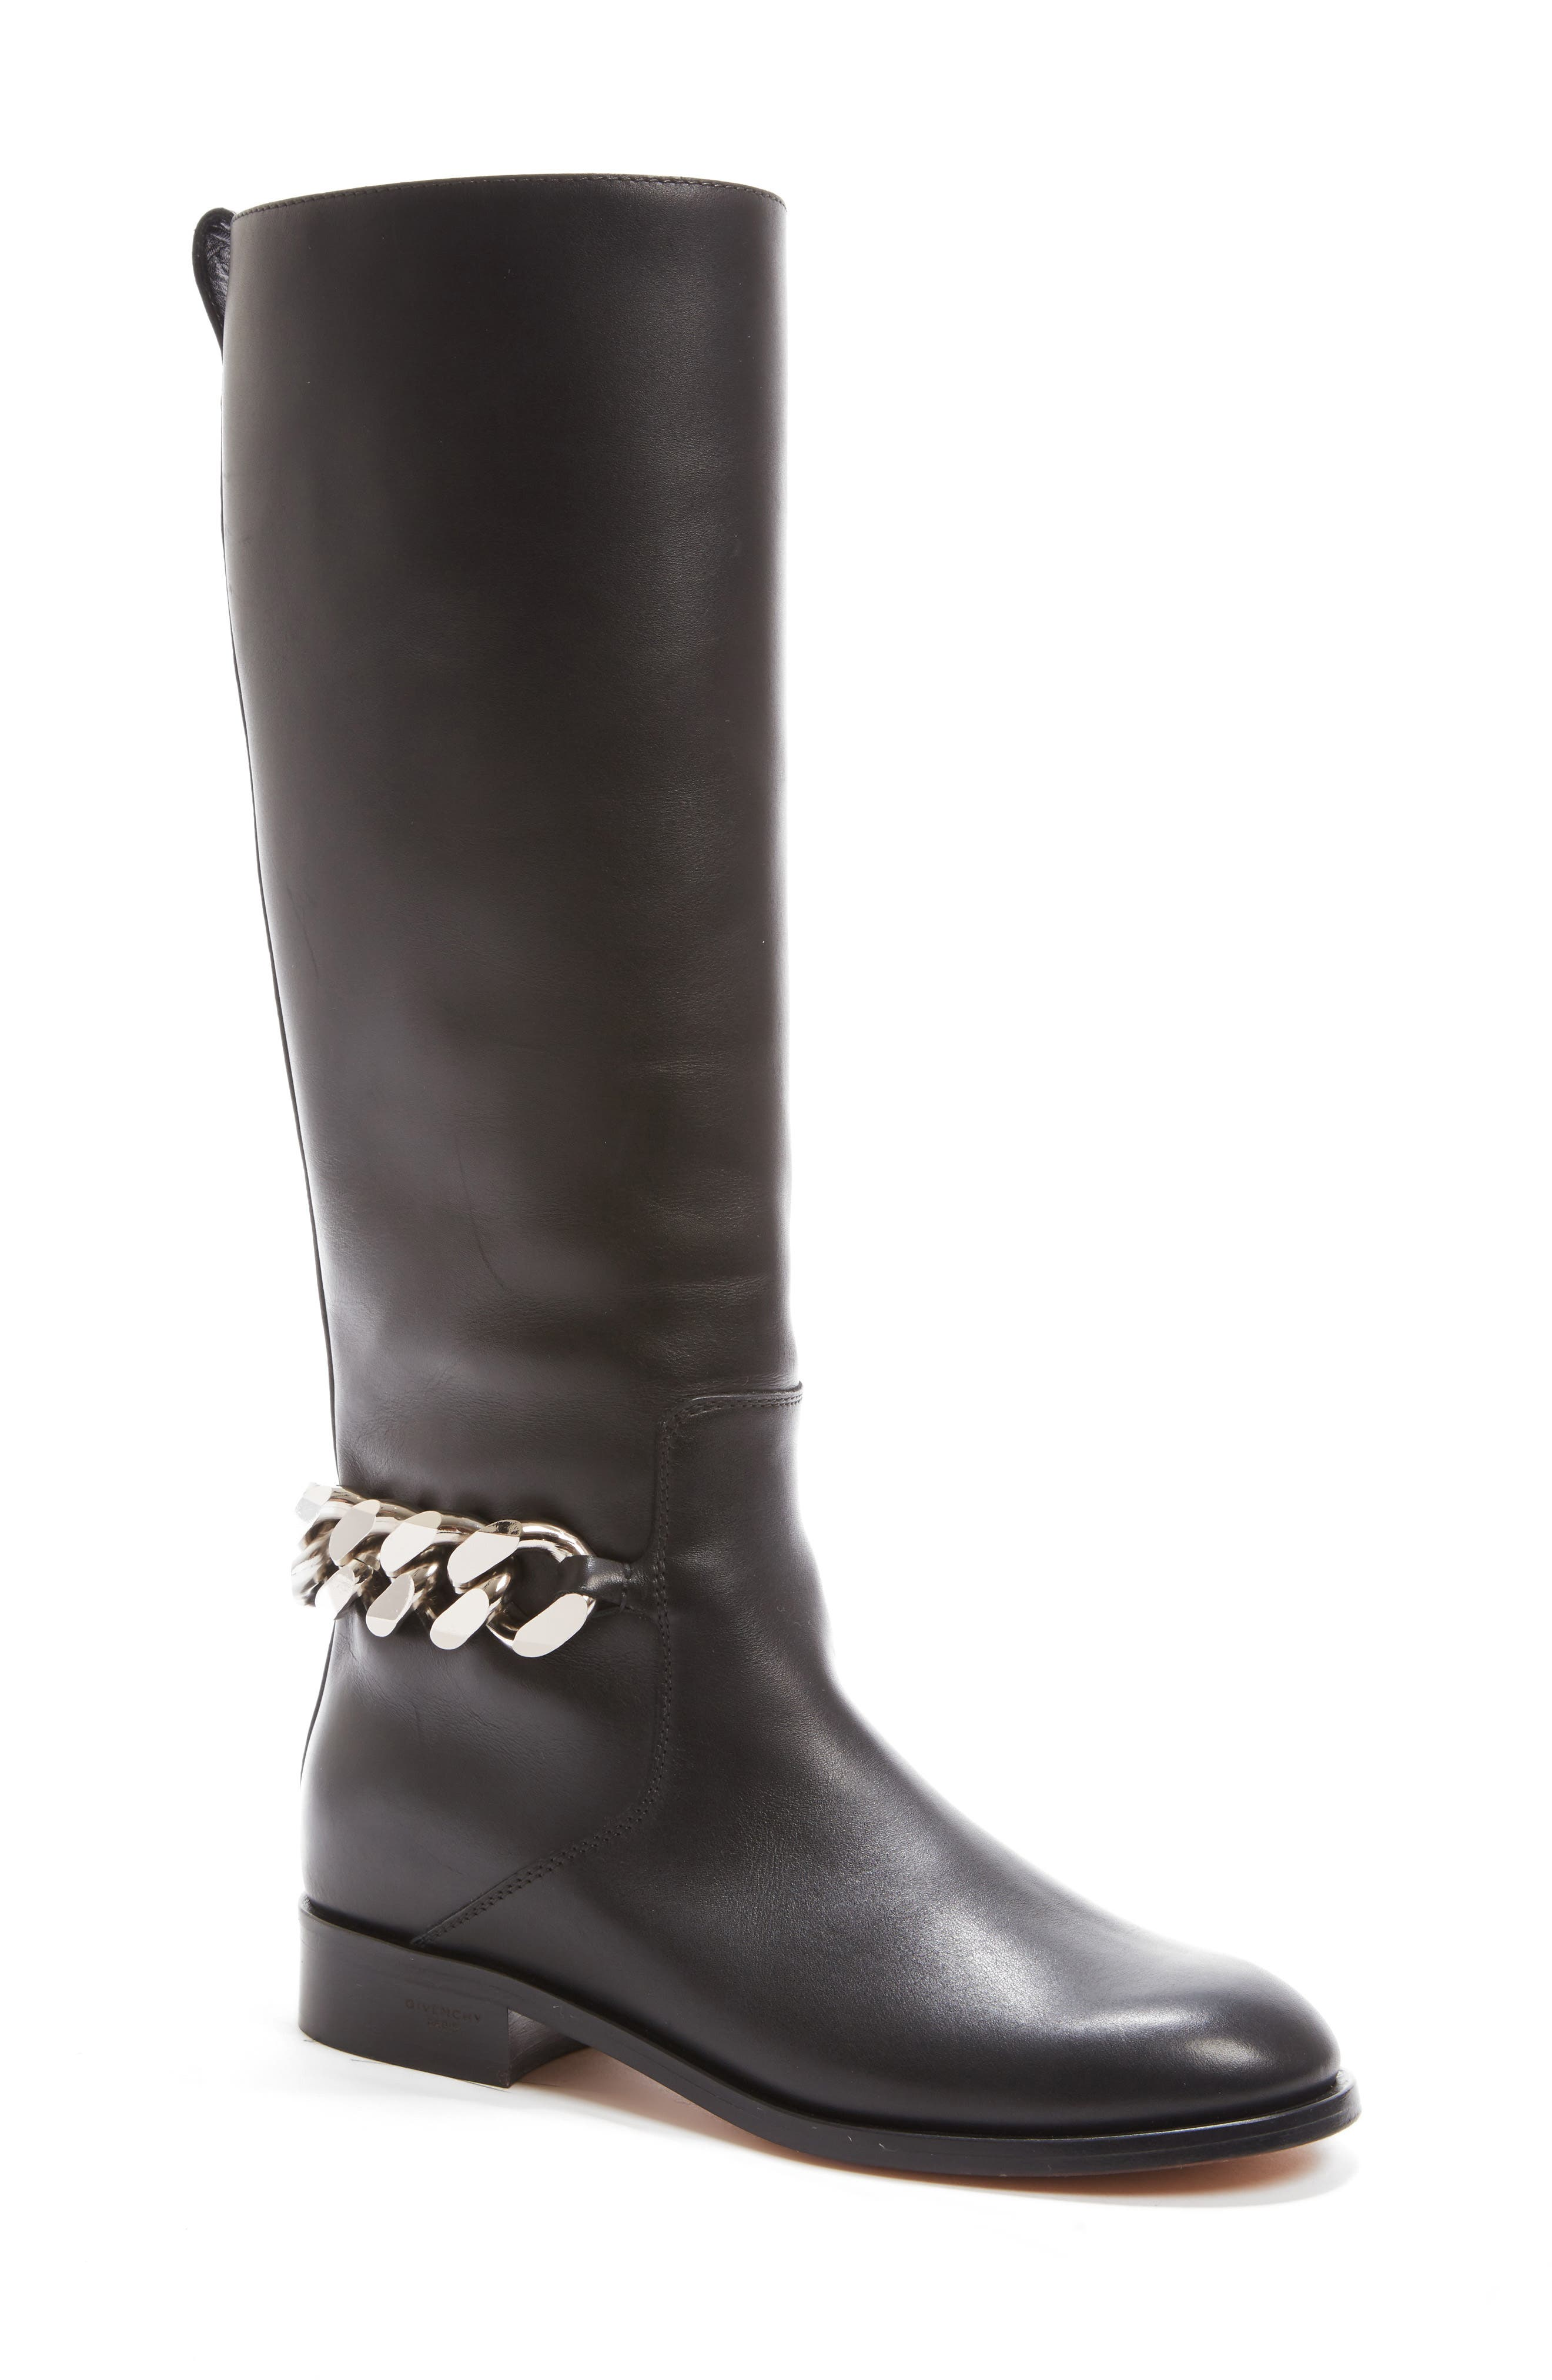 Alternate Image 1 Selected - Givenchy Chain Tall Boot (Women)